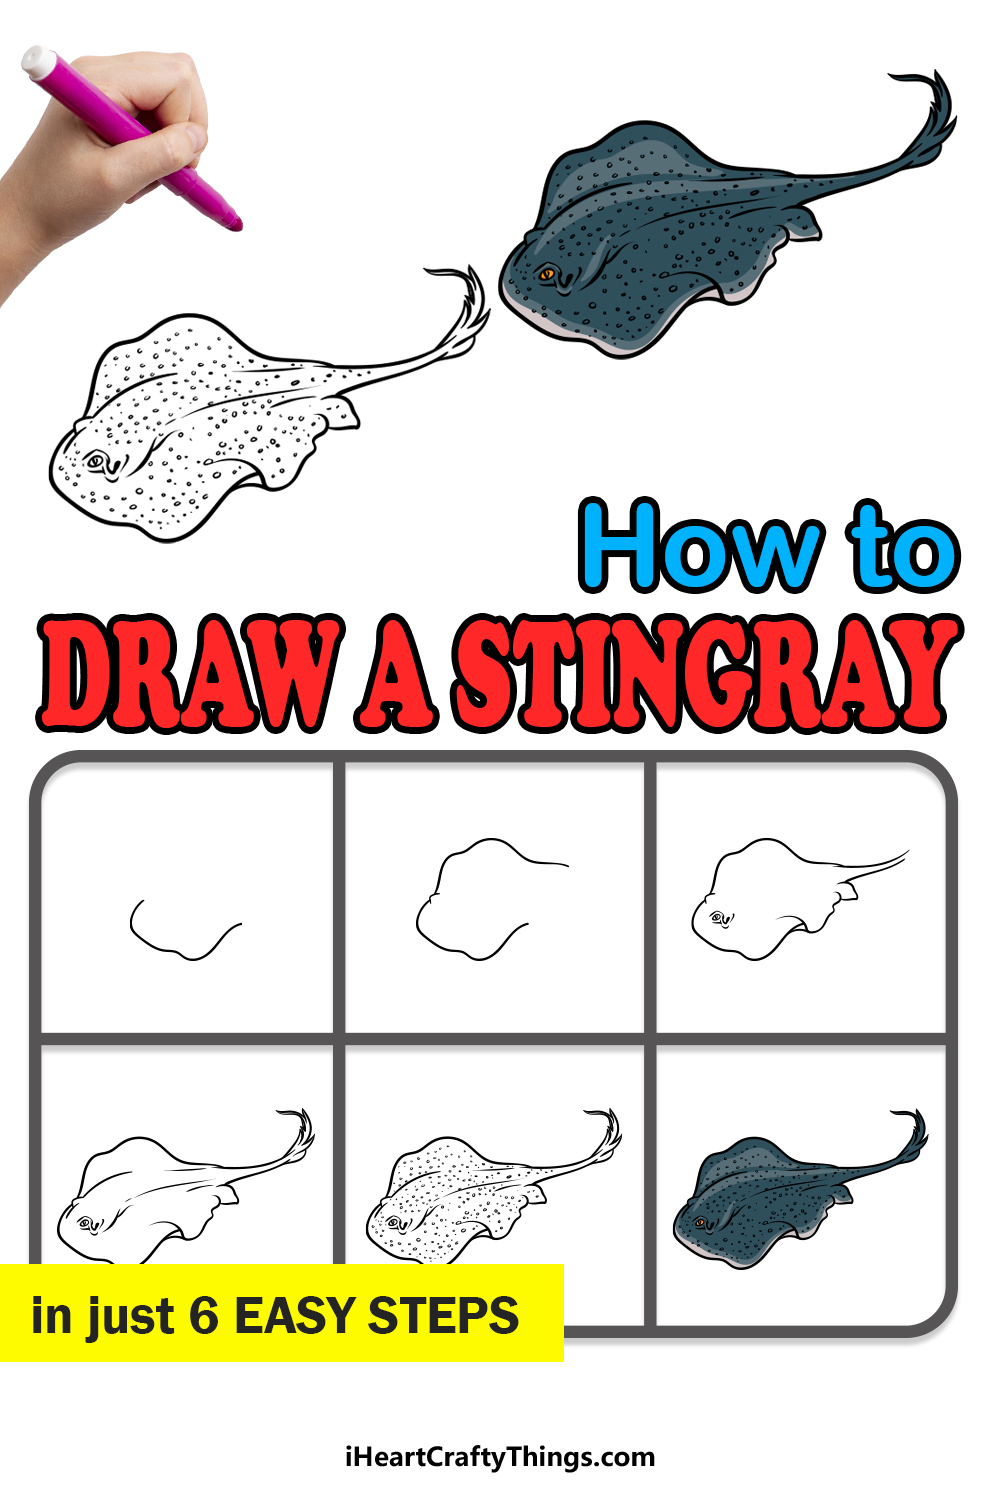 how to draw a stingray in 6 easy steps